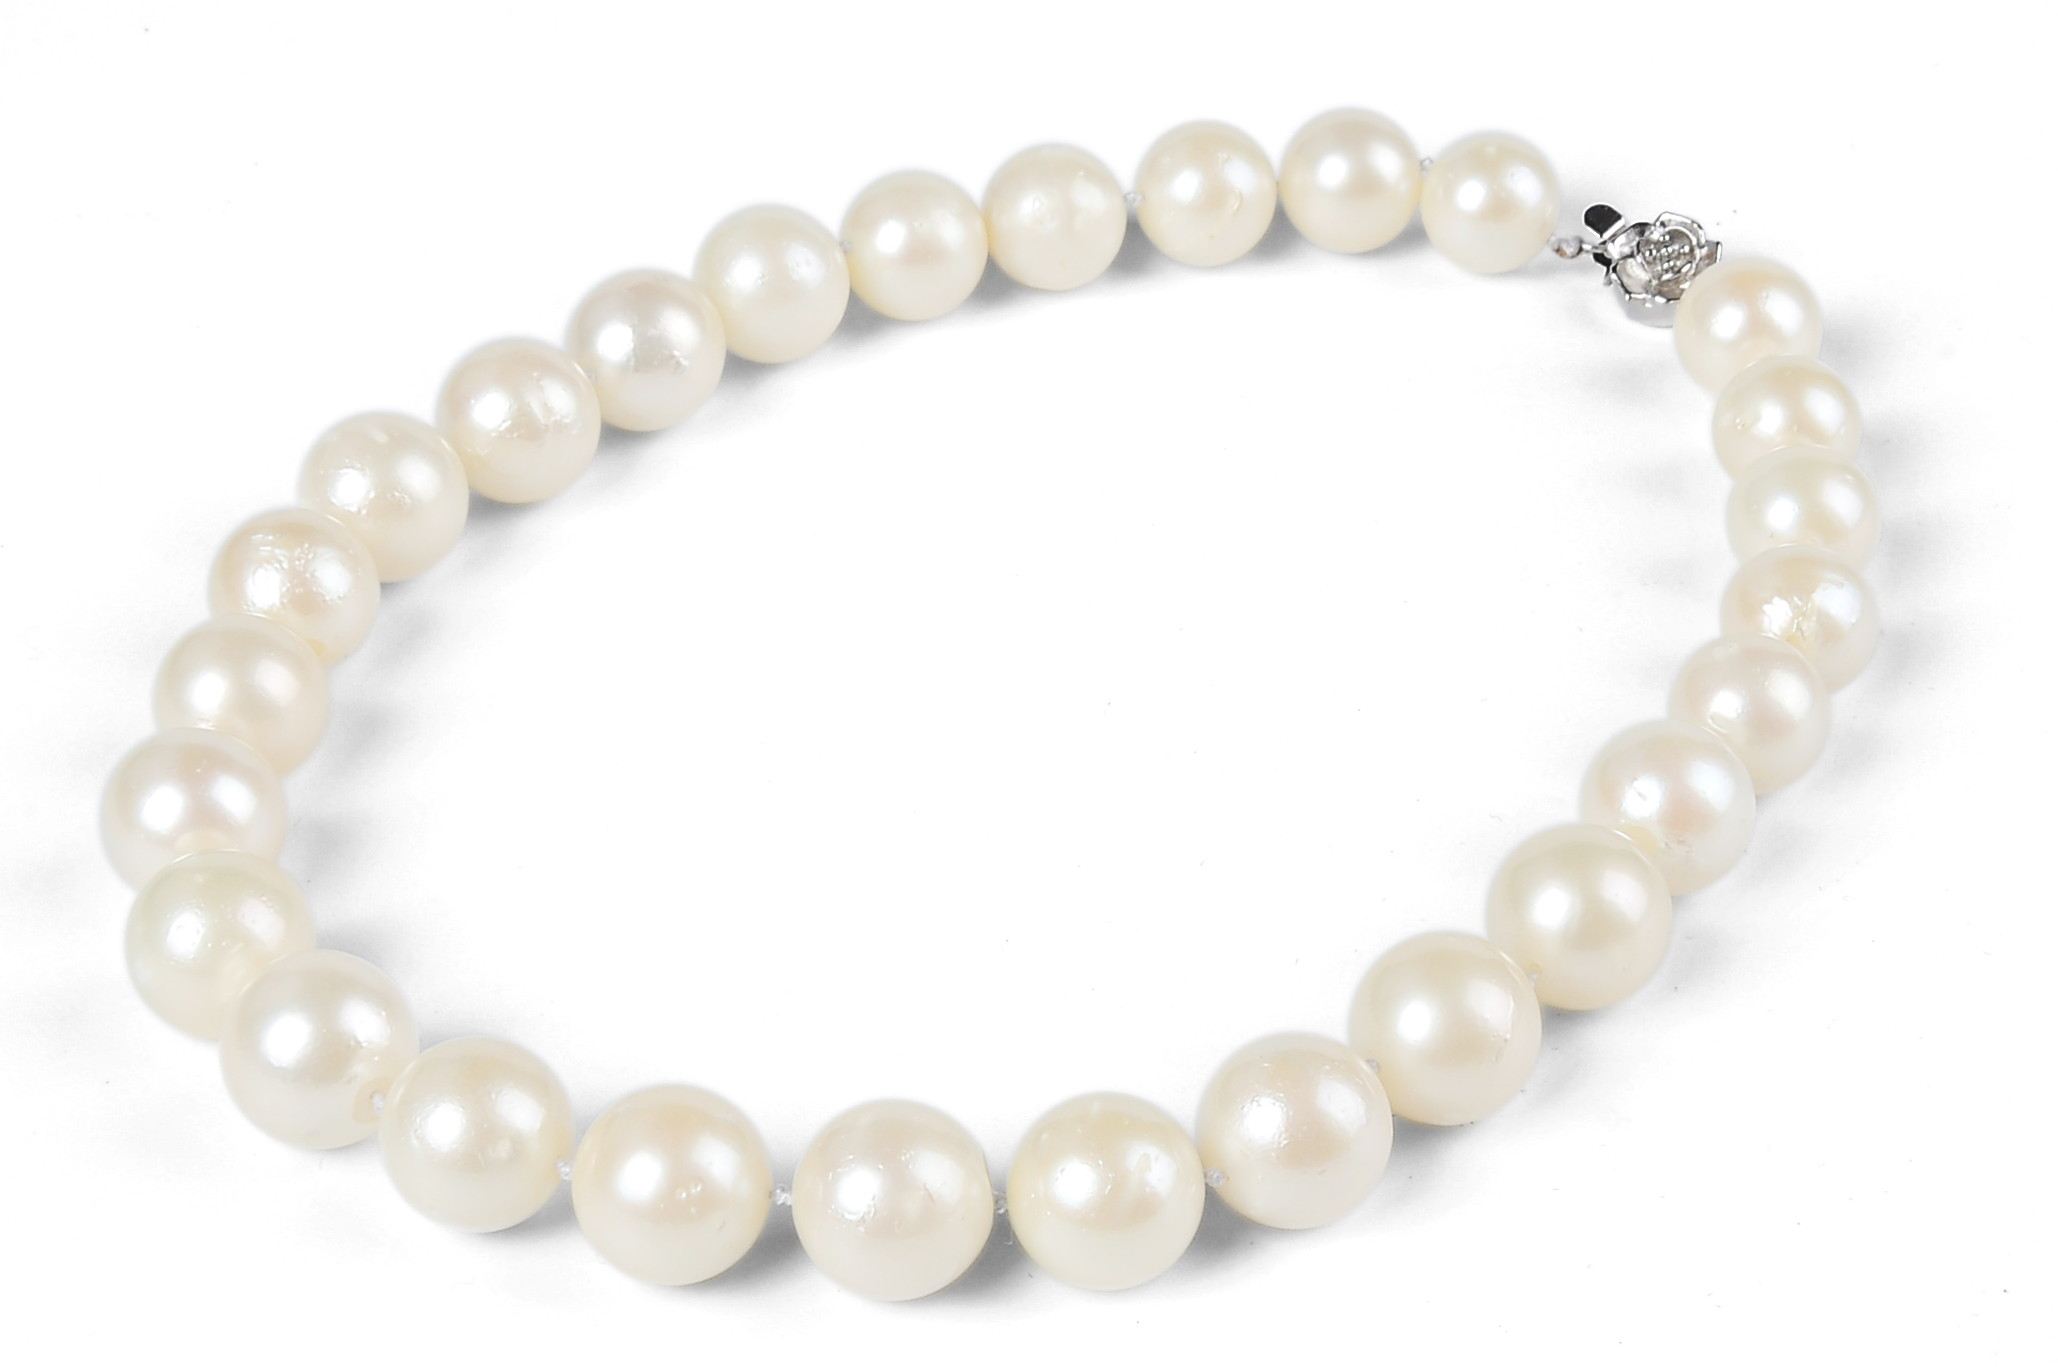 Huge 13.5mm Cream South Sea Pearl Choker Necklace 15